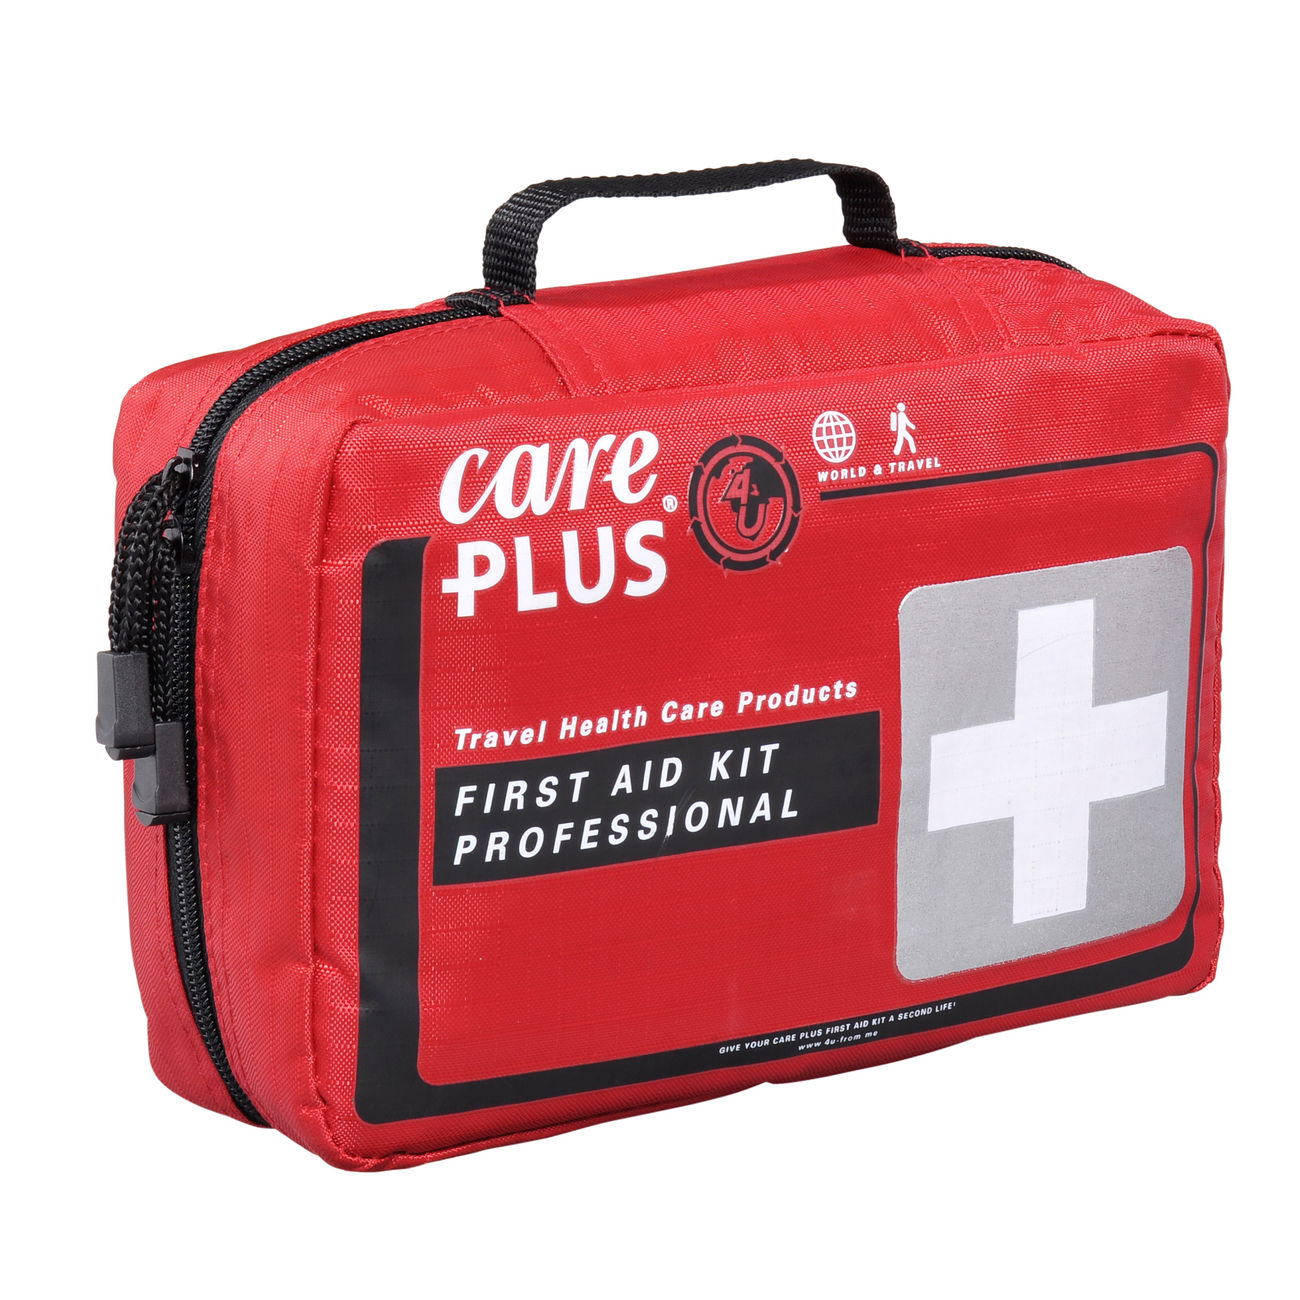 Care Plus First Aid Kit Professional 0